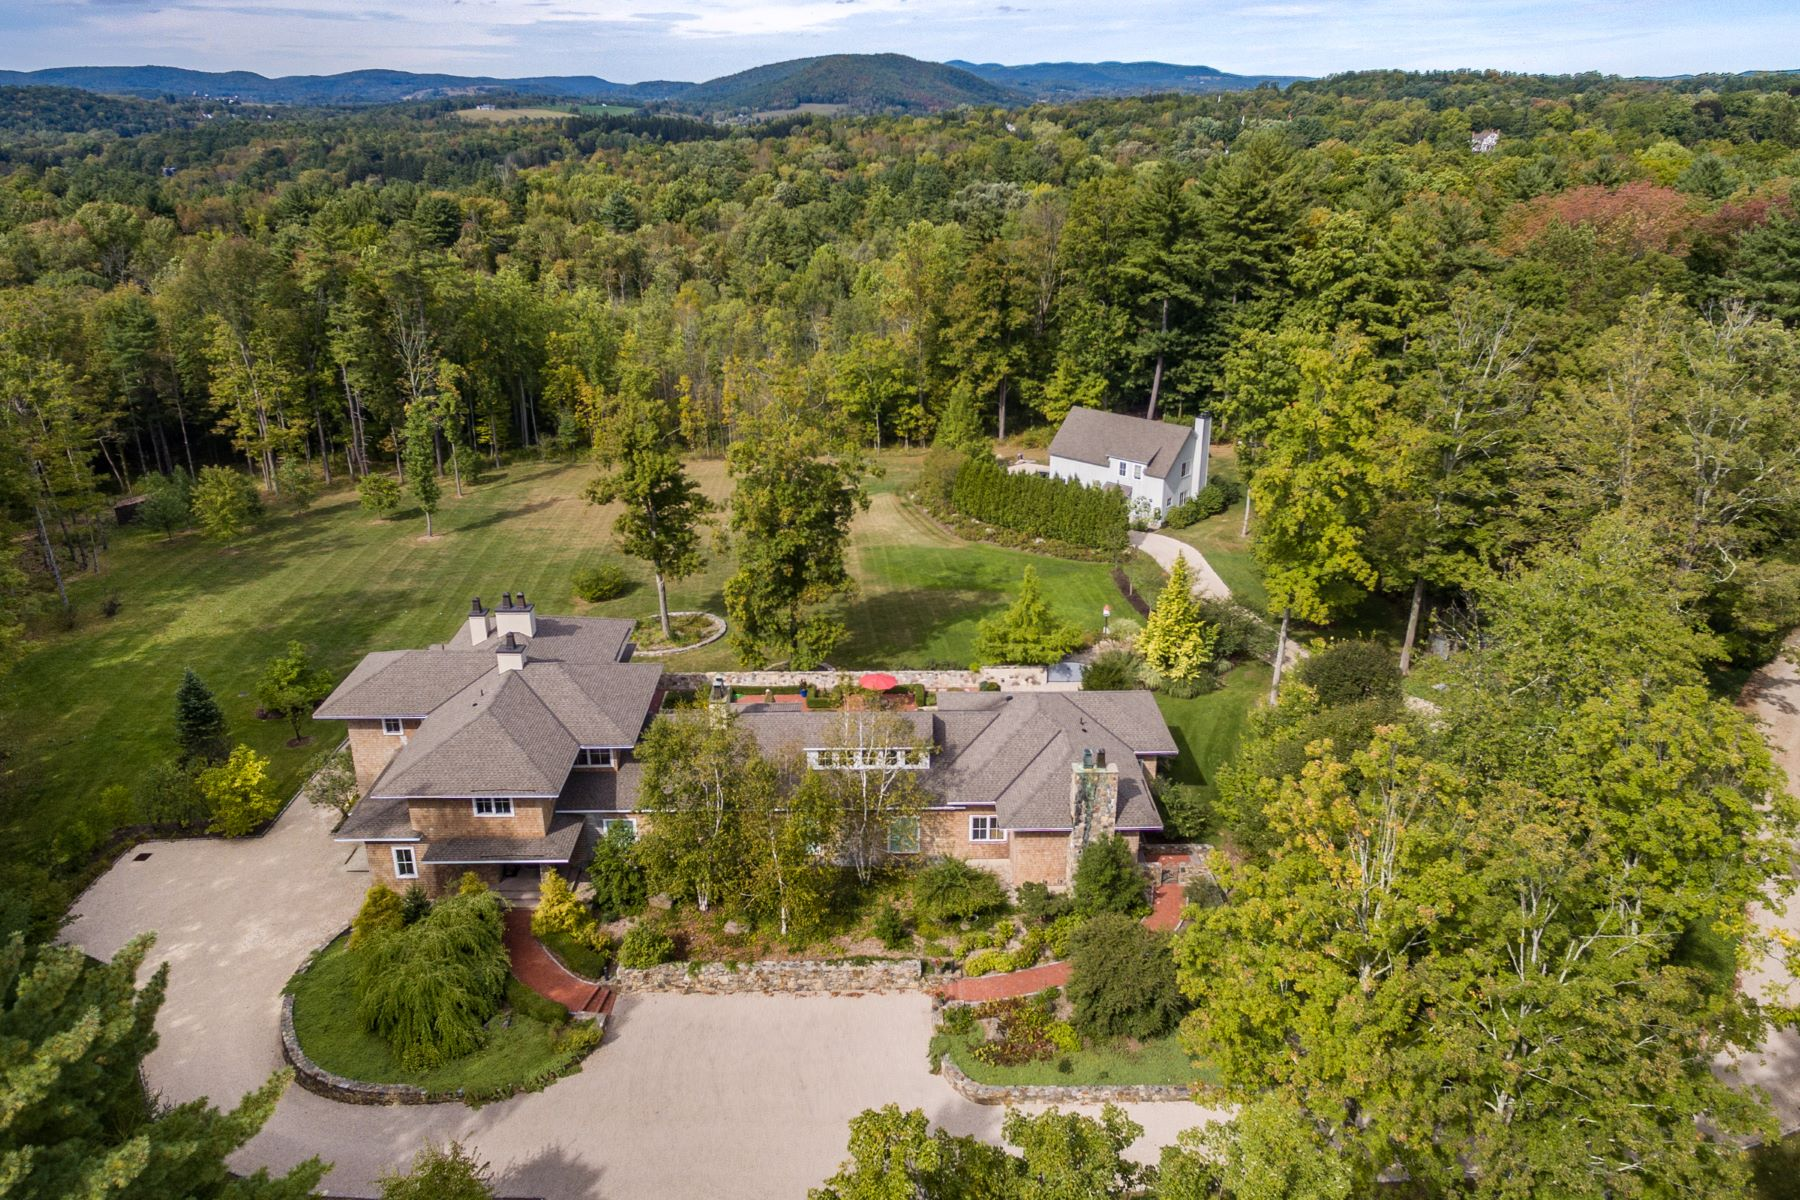 Single Family Home for Sale at Designed for the Art Collector 85 South Main St Sharon, Connecticut, 06069 United States